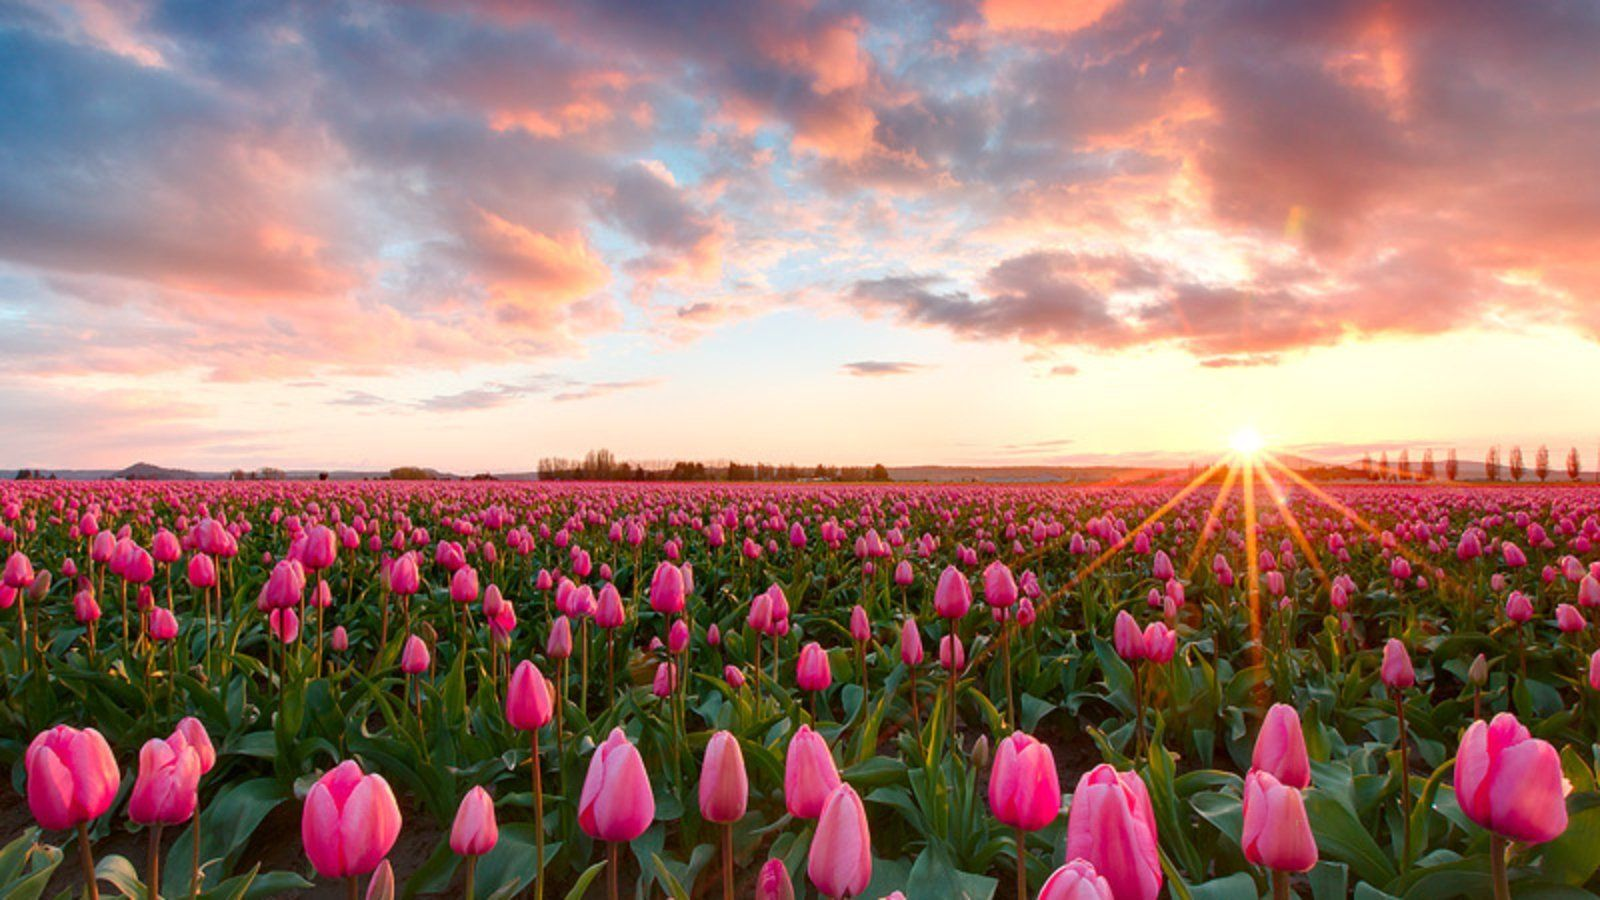 Pink Tulips Wallpaper And Background Image 1600x900 Id In Tulip